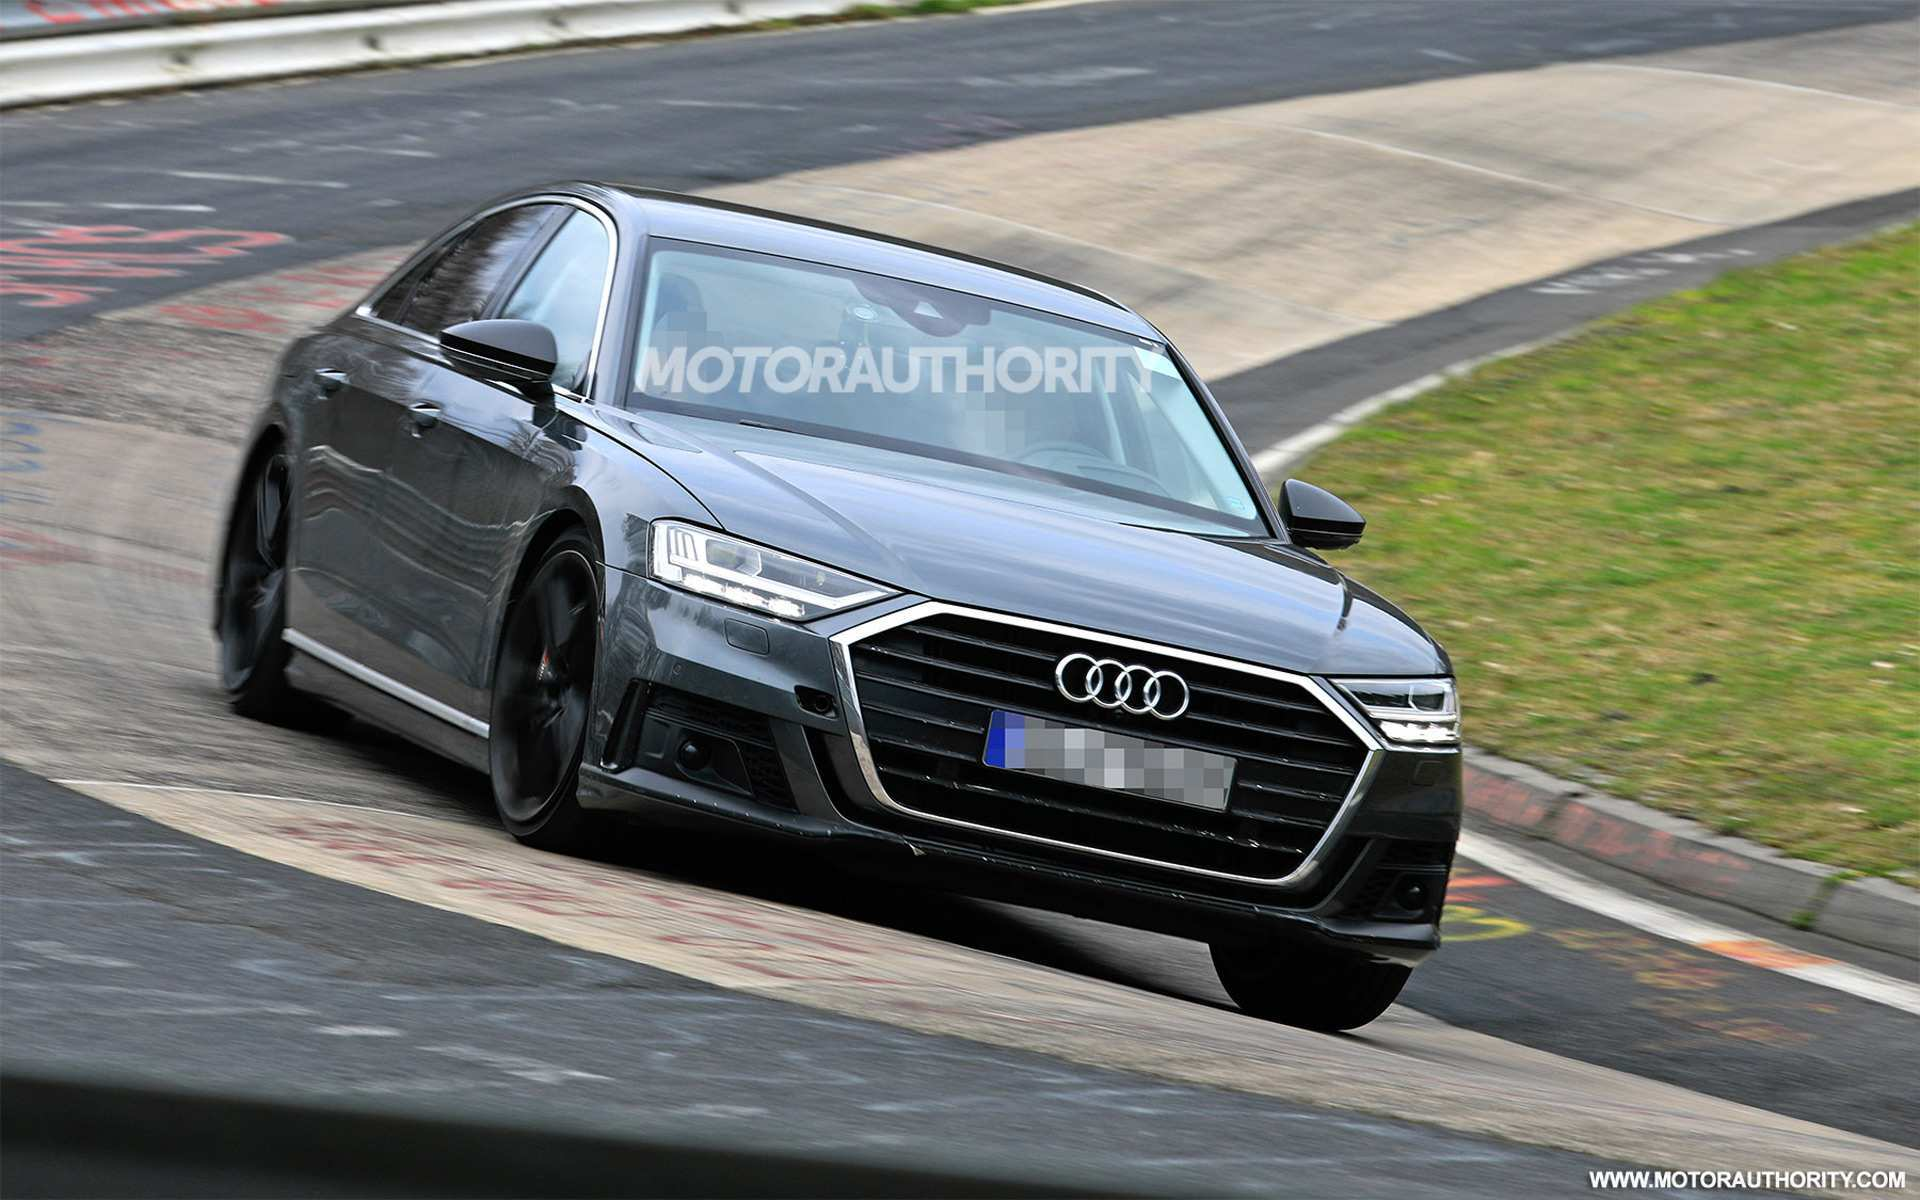 51 The 2020 Audi A8 Interior for 2020 Audi A8